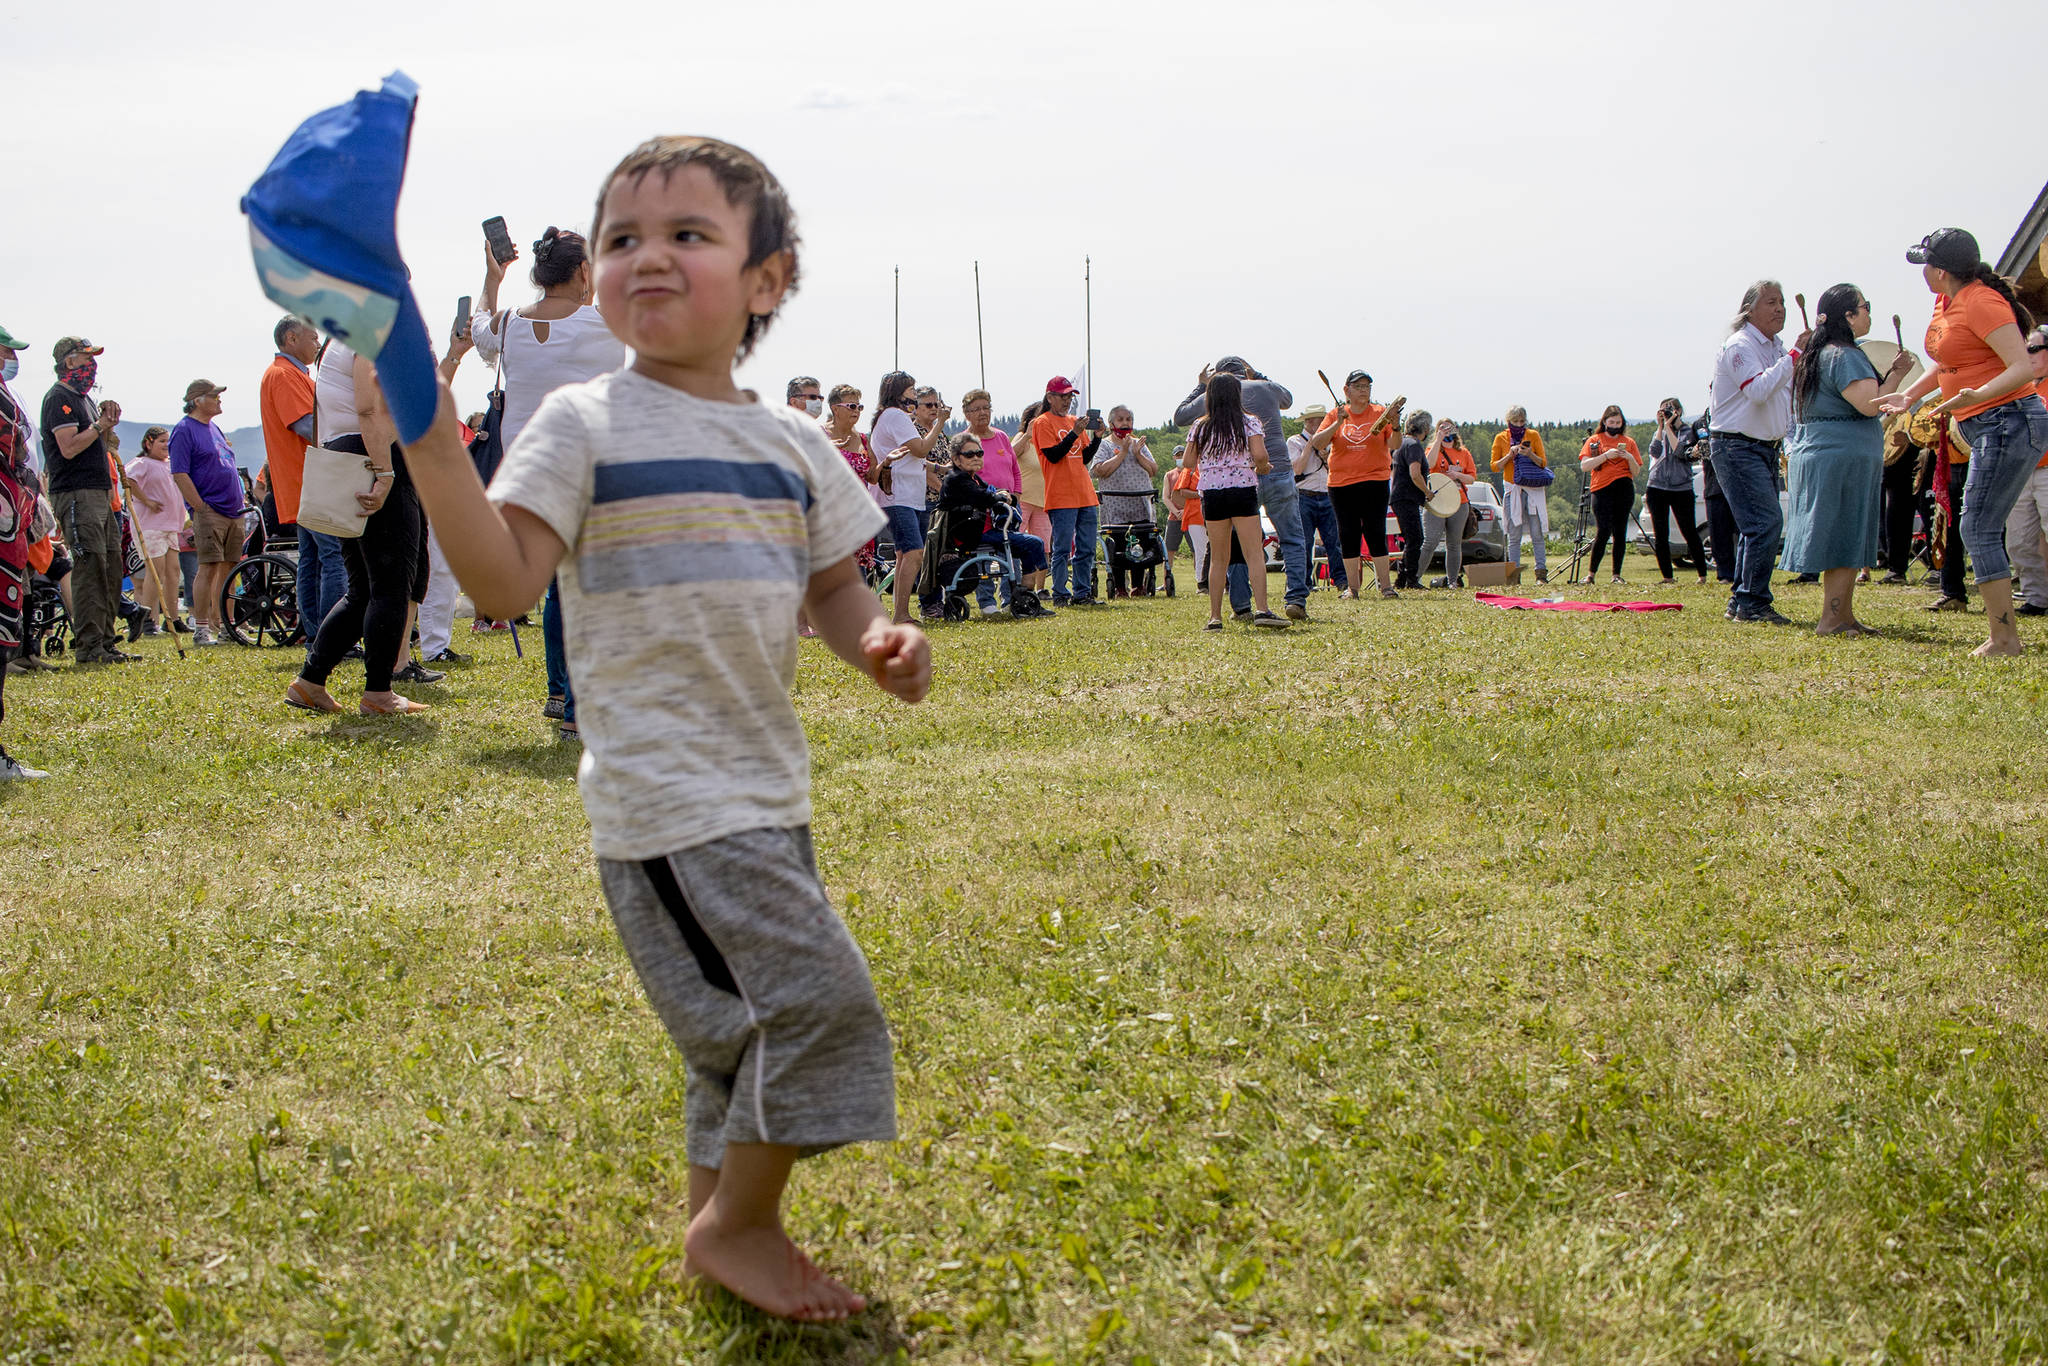 The three-day healing ceremony was held on the site of the Lejac Residential School. This ceremony was held after 215 children found buried at the Kamloops Indian Residential School site. (Aman Parhar/Omineca Express)